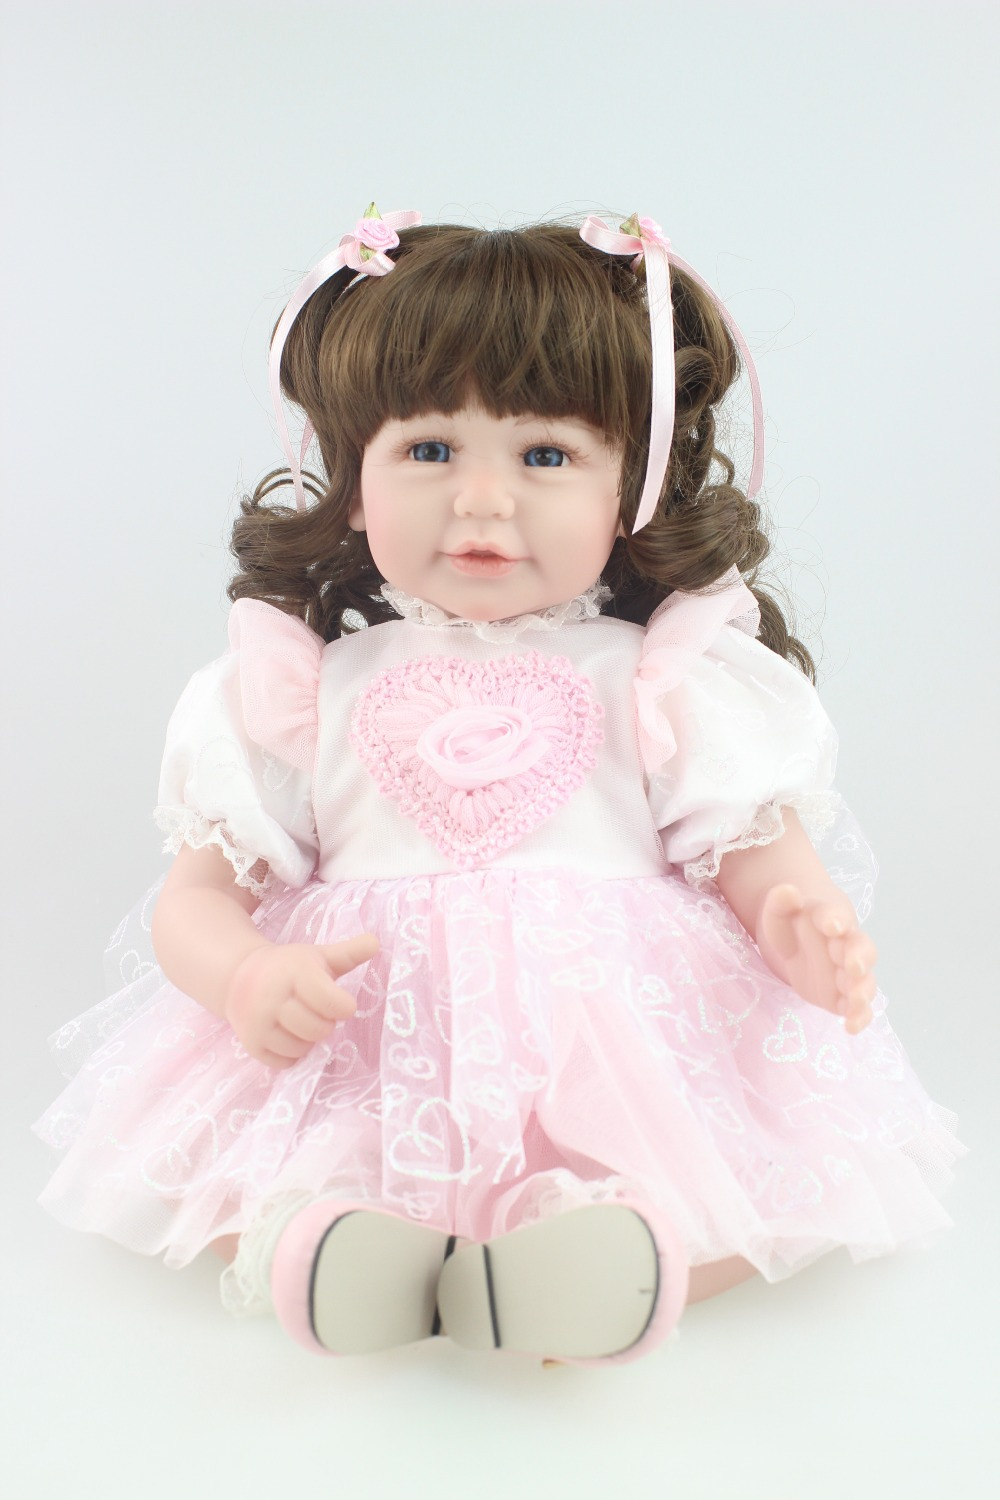 Girl Toys Doll : New design reborn toddler adora girl doll sweet baby